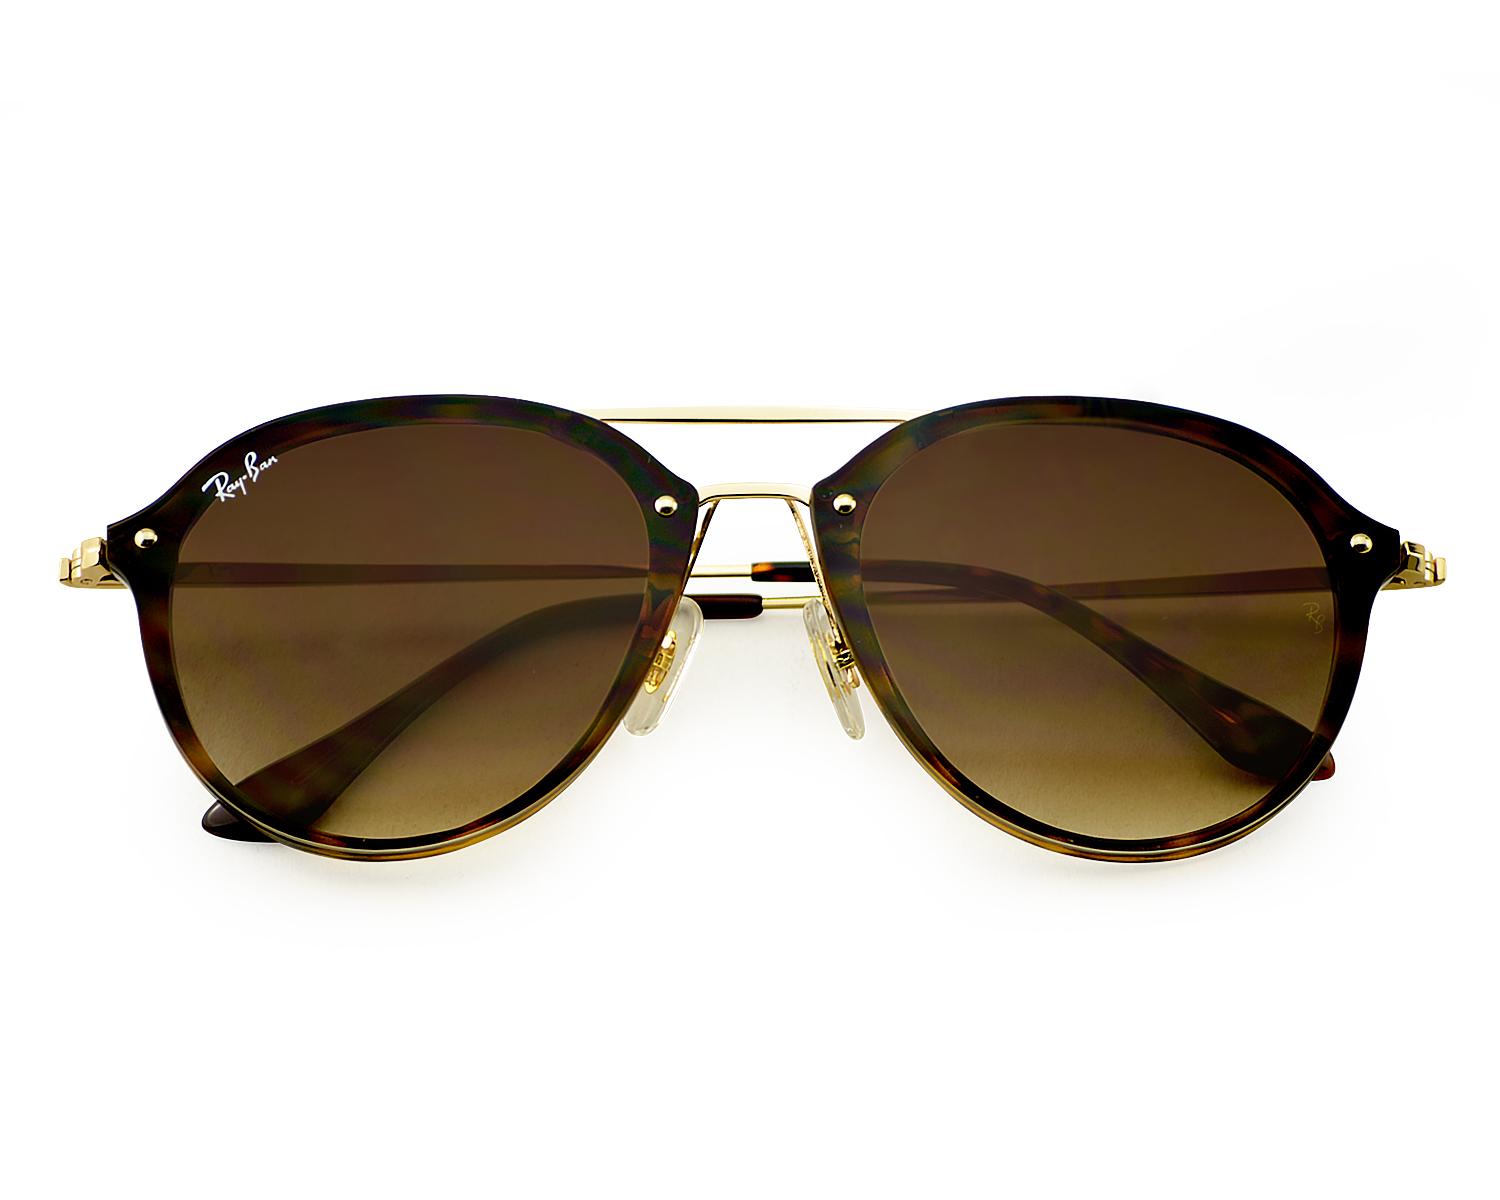 8f0daf21a1d Ray-Ban RB4292N Blaze Double Bridge 710 13 Tortoise Gold Frame Brown  Gradient Lenses Unisex Sunglasses 62mm